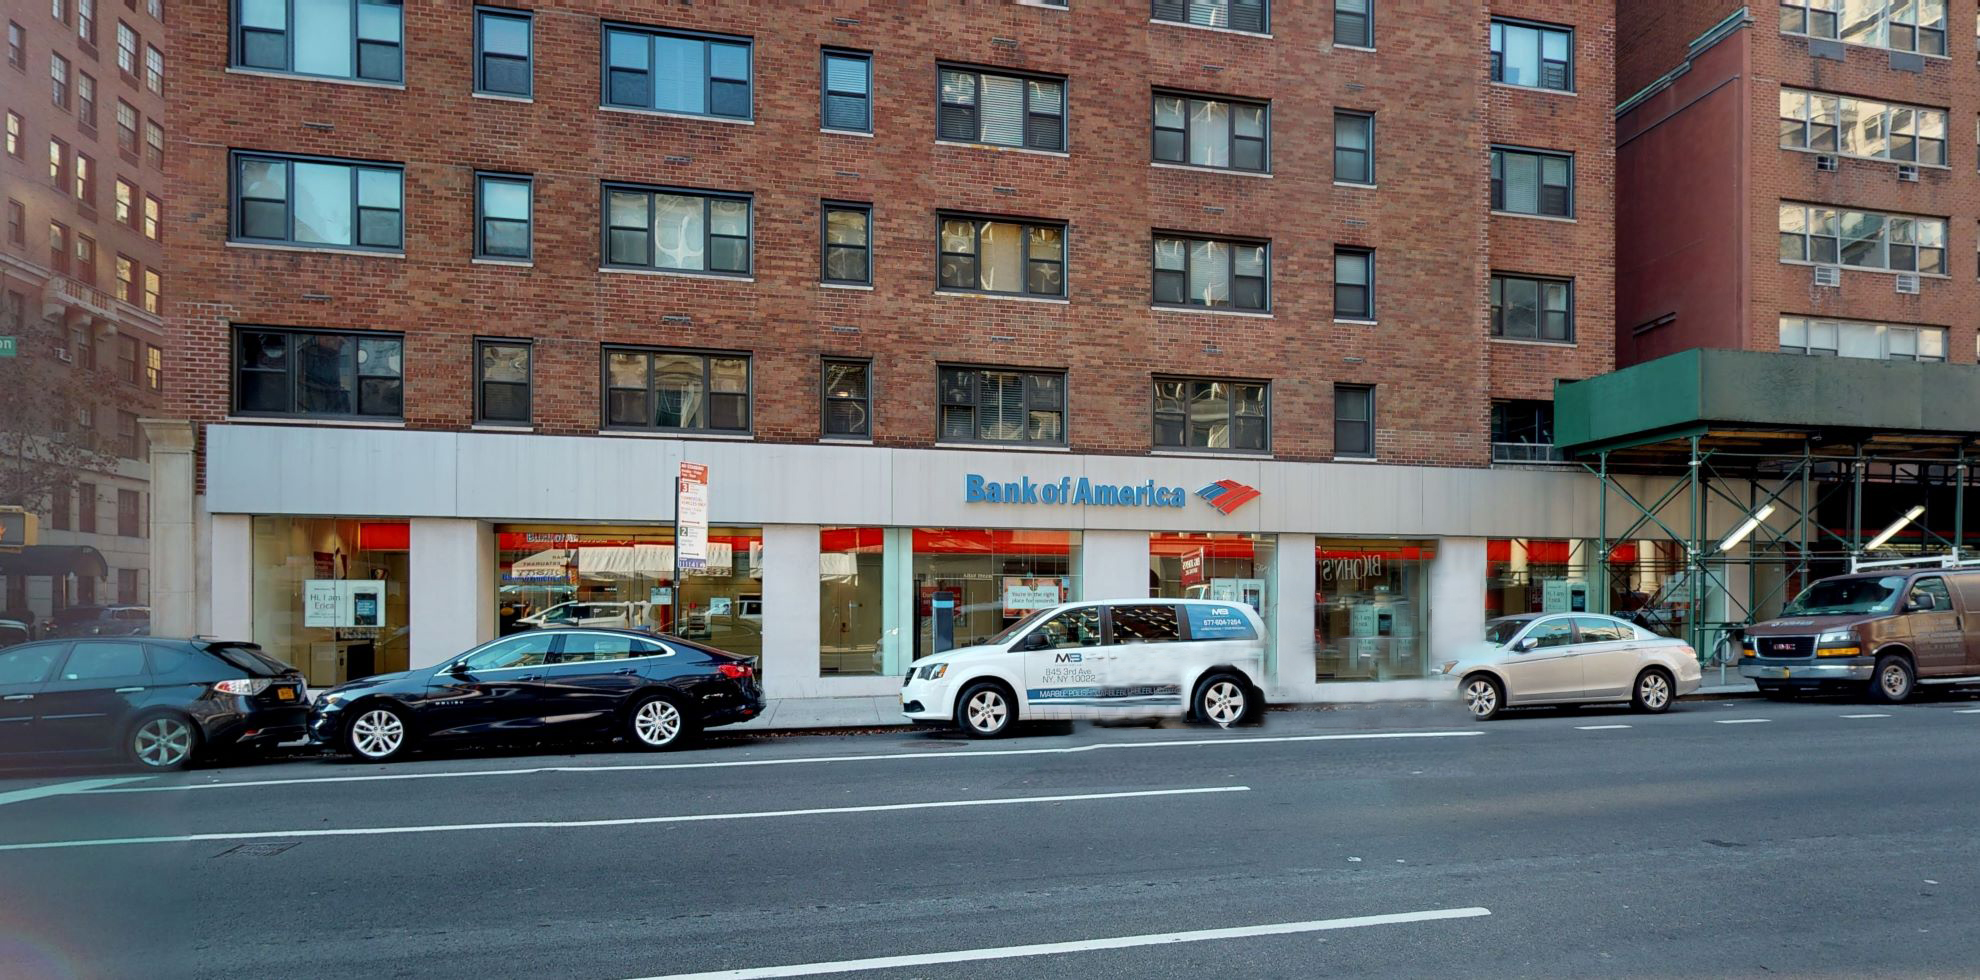 Bank of America financial center with walk-up ATM   1066 Lexington Ave, New York, NY 10021